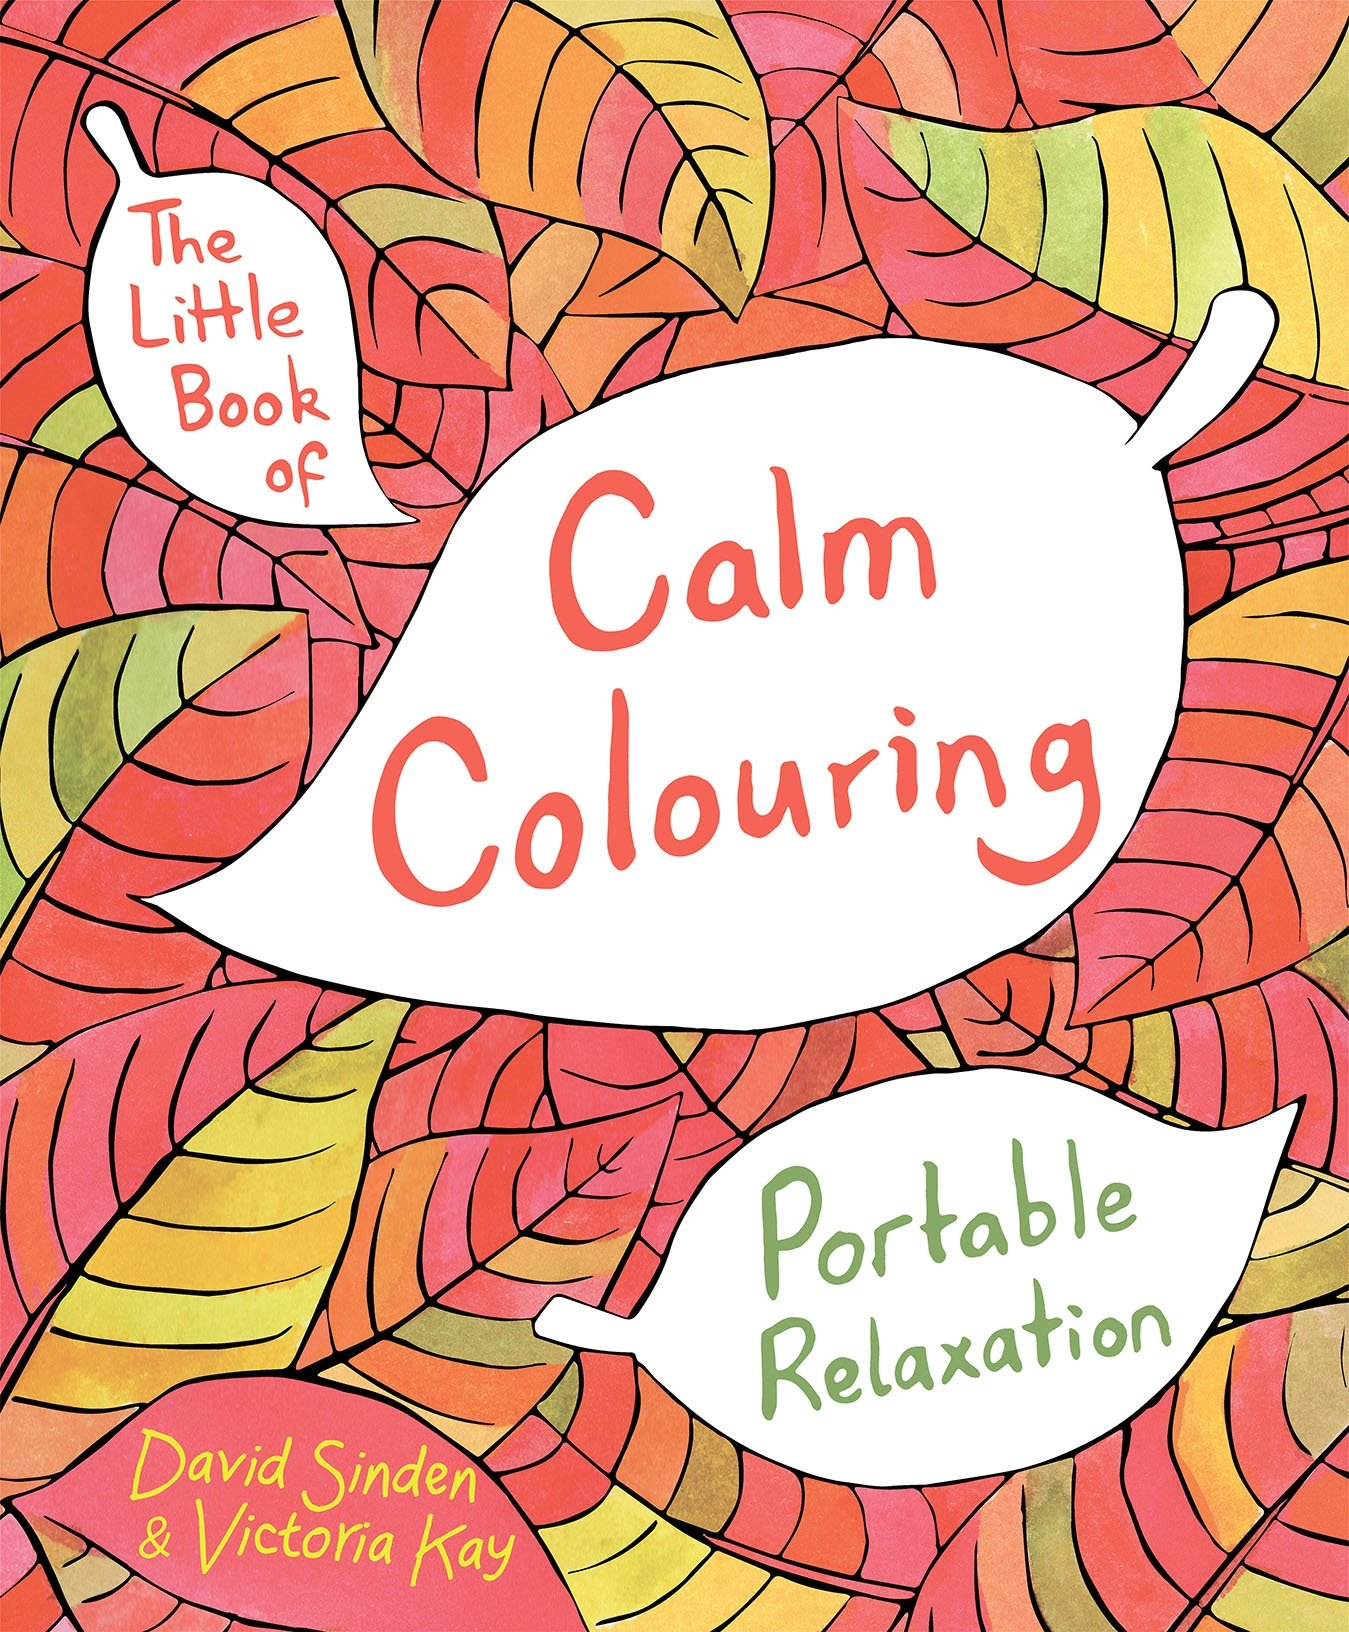 Little book of coloring for mindfulness - The Little Book Of Calm Colouring Portable Relaxation Amazon Co Uk David Sinden Victoria Kay 9781509812660 Books